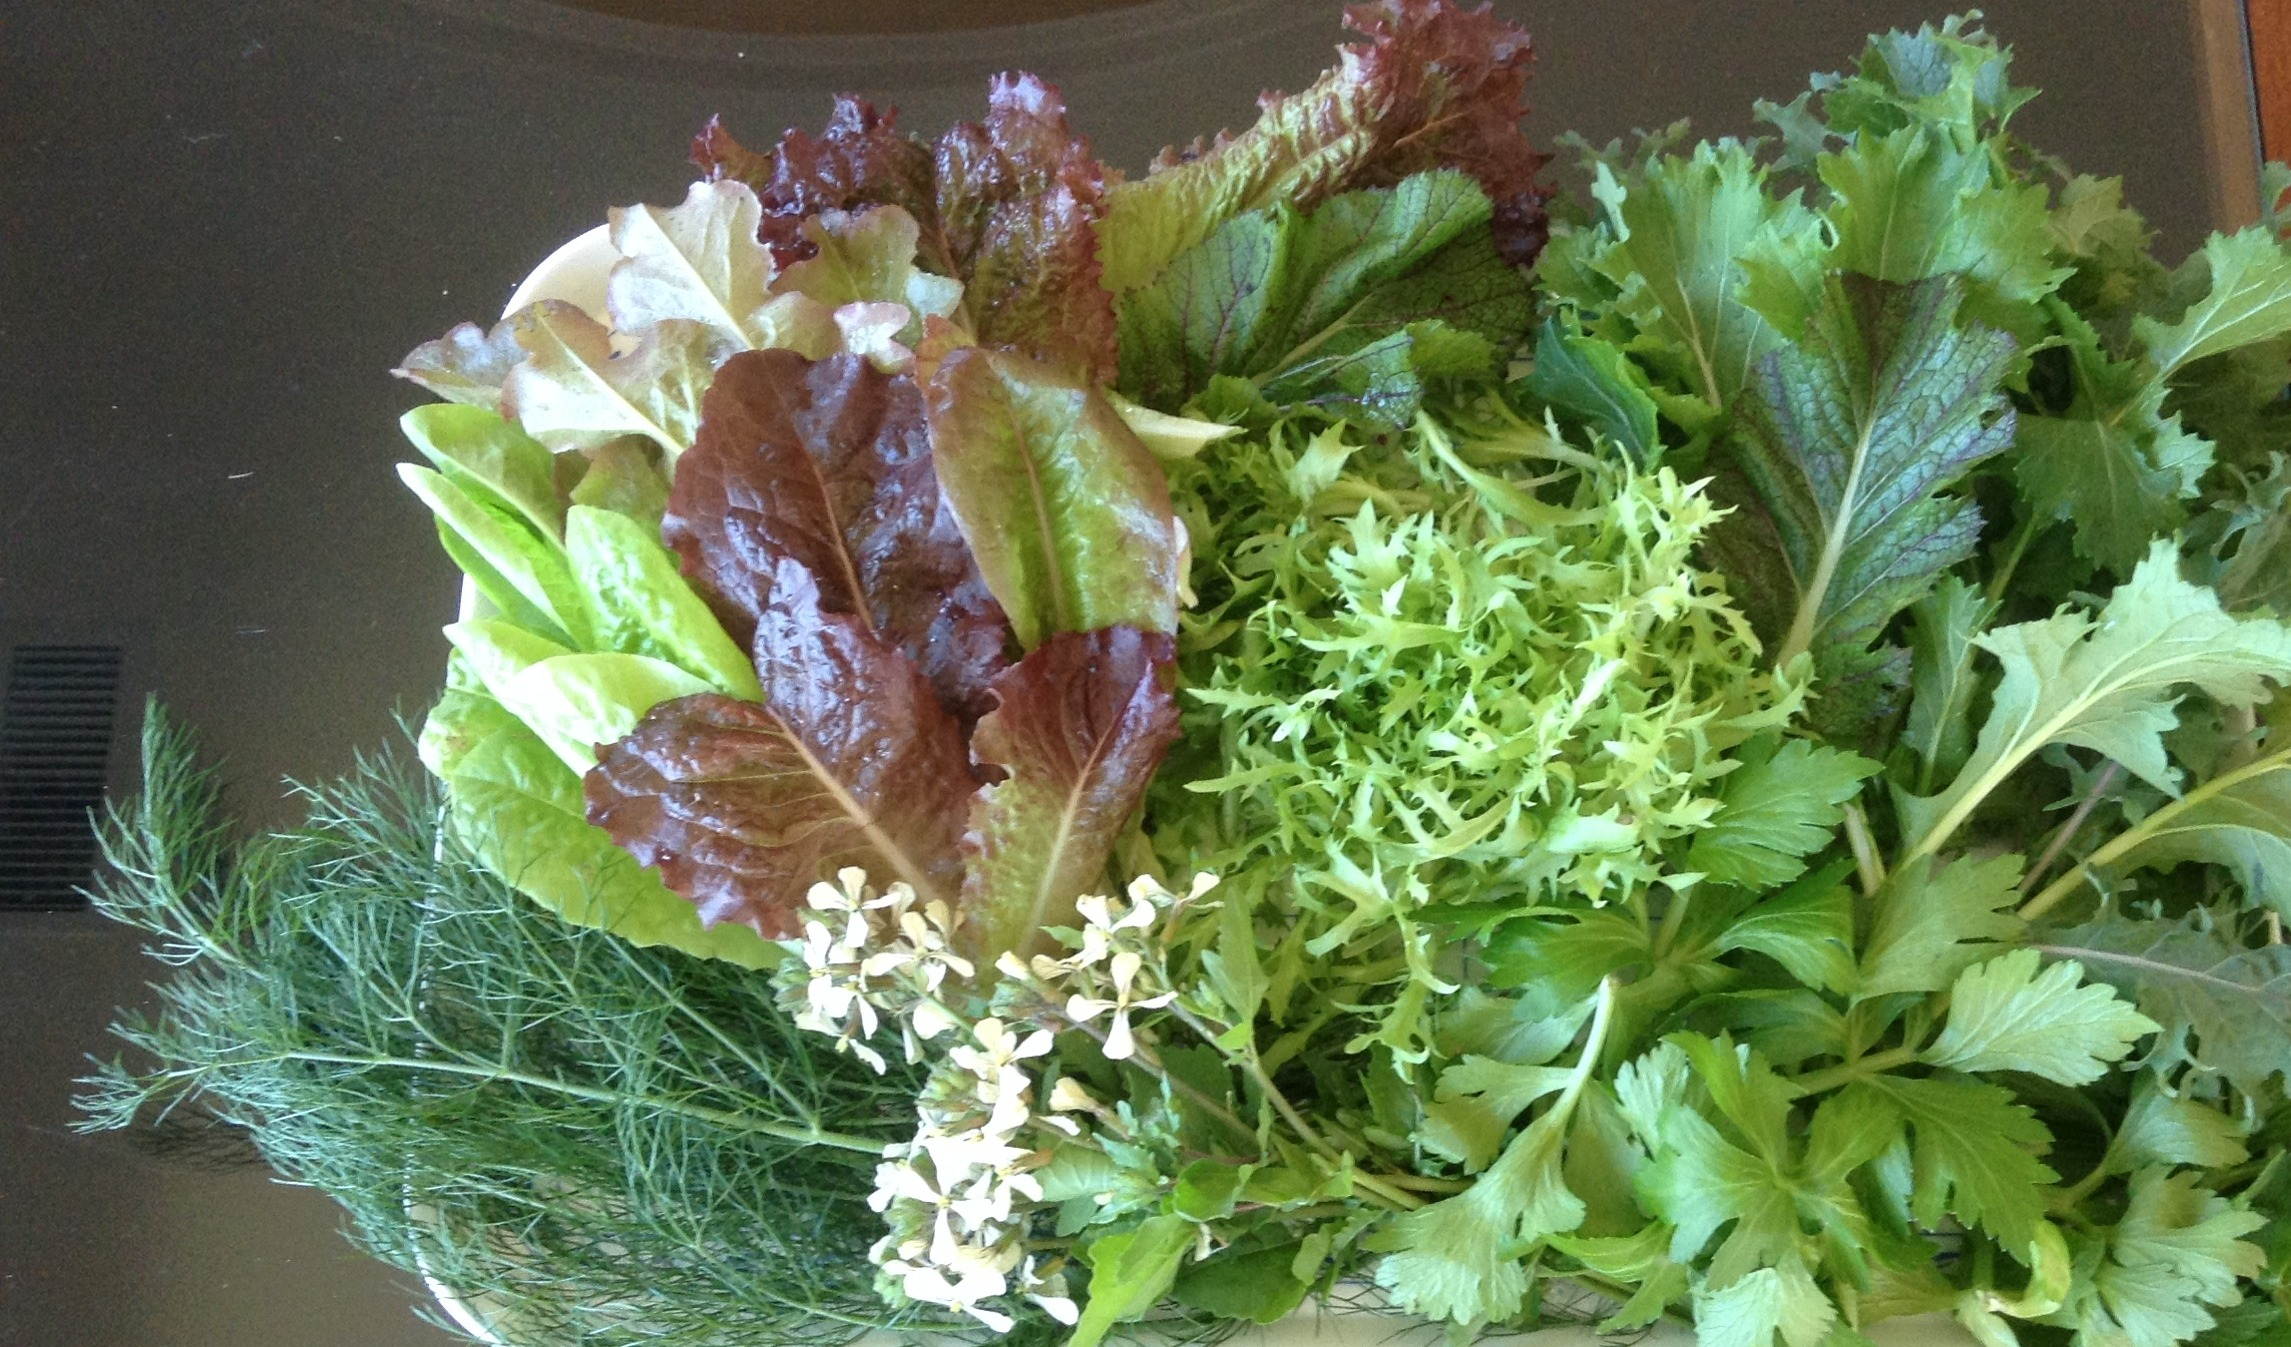 Greens delicate, spicy, gorgeous along with arugula flowers which provide a peppery snap